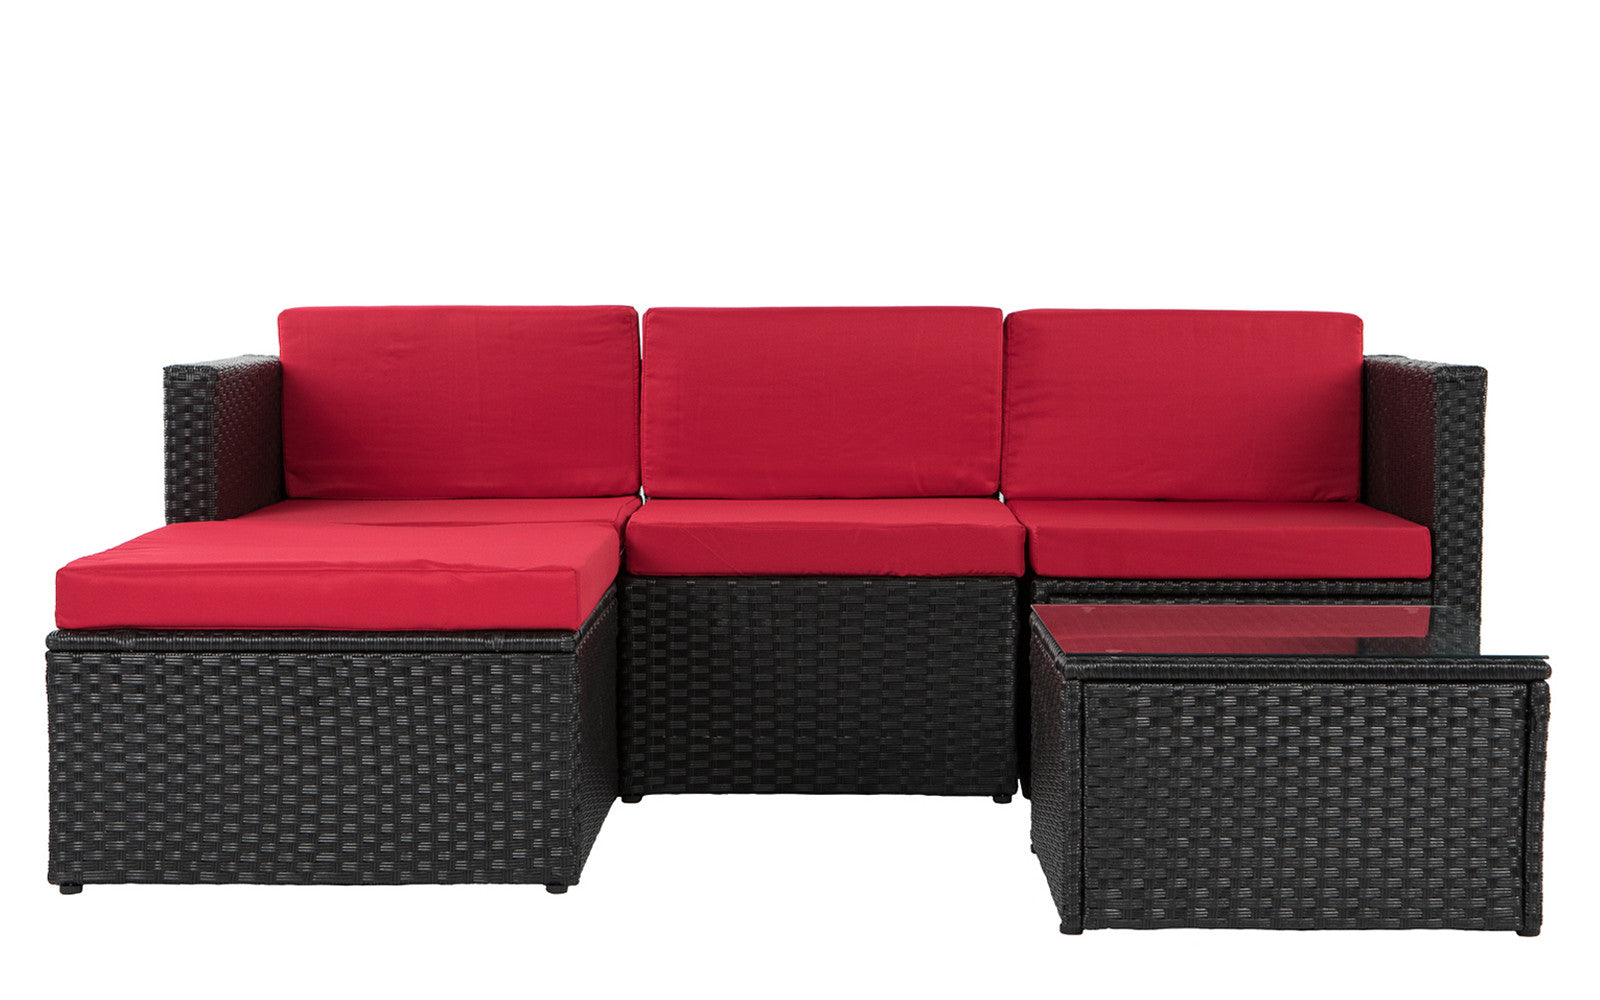 ... Set · Kilauea Modern Small Sectional With Coffee Table In Red Black ...